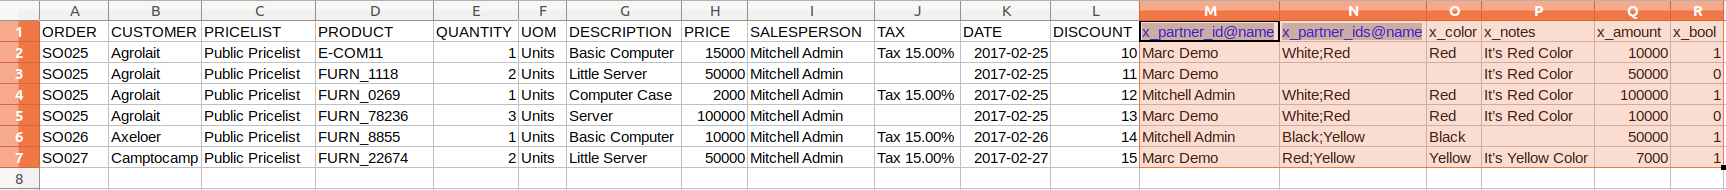 Product excel report